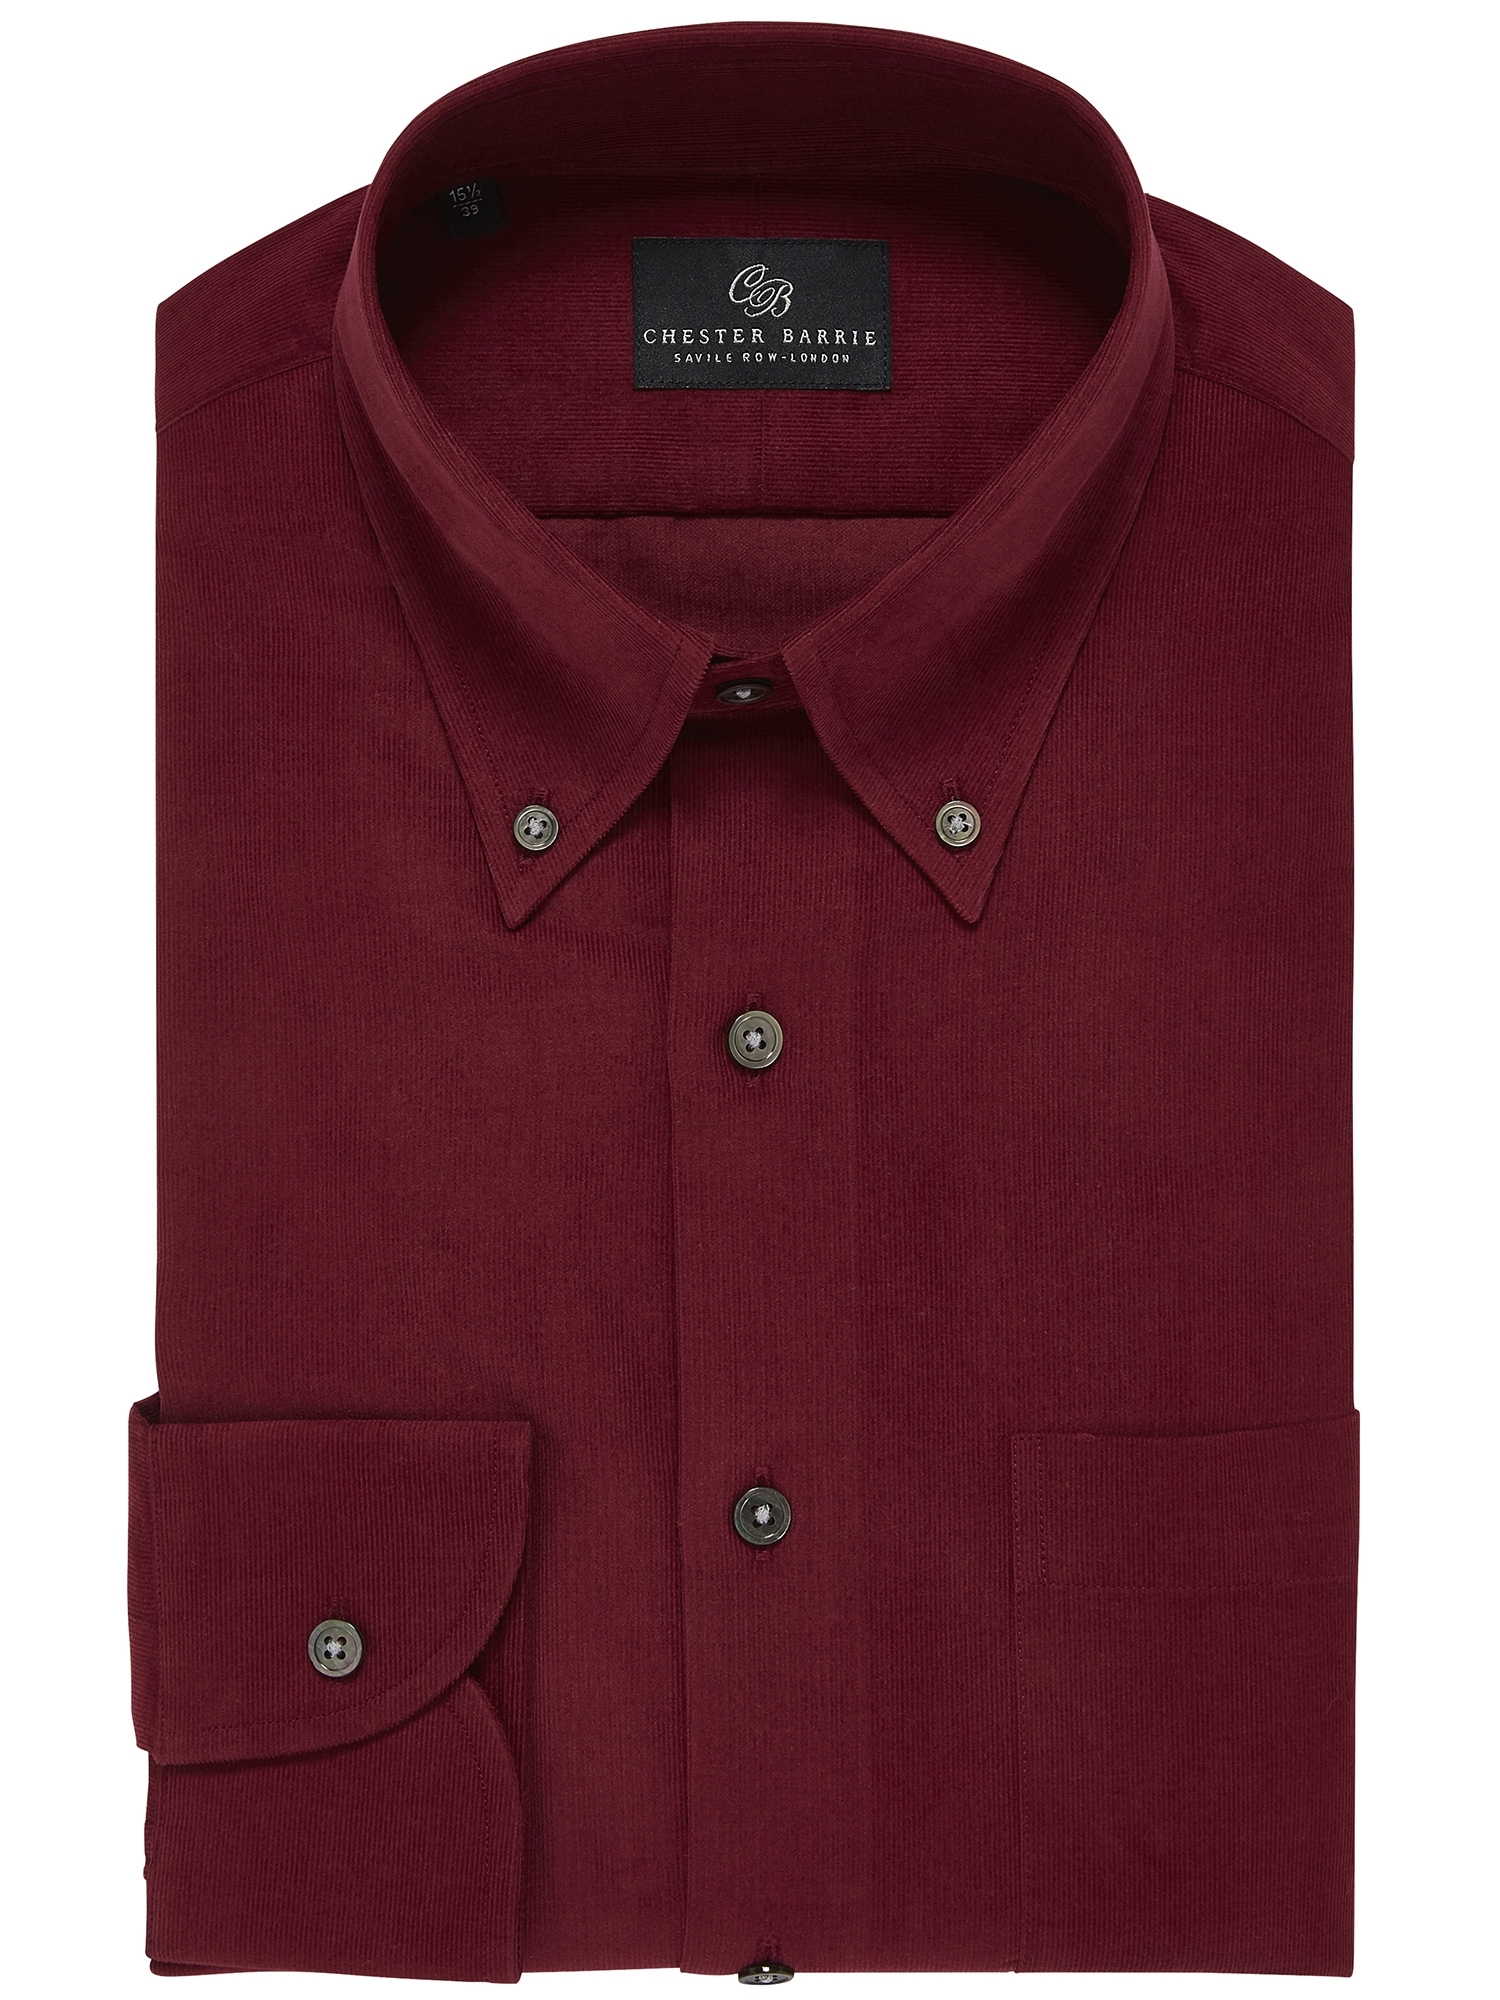 CHESTER BARRIE Baby Cord Shirt In Red